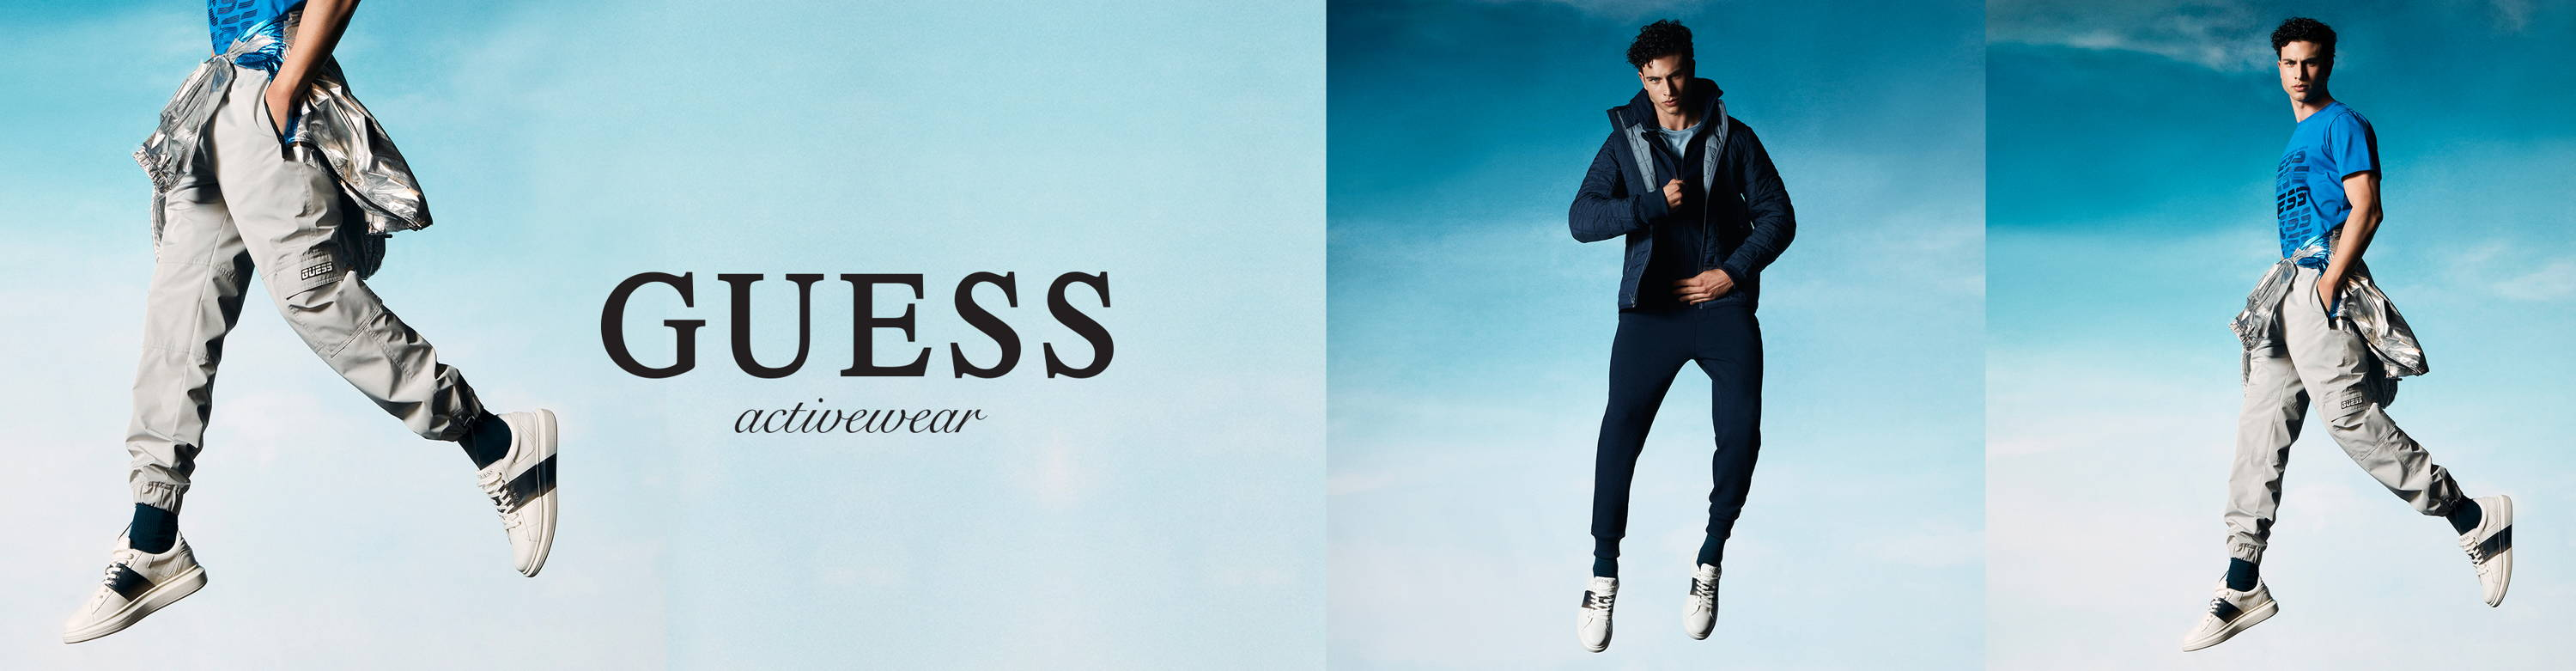 Guess mens activewear campaign image desktop and tablet